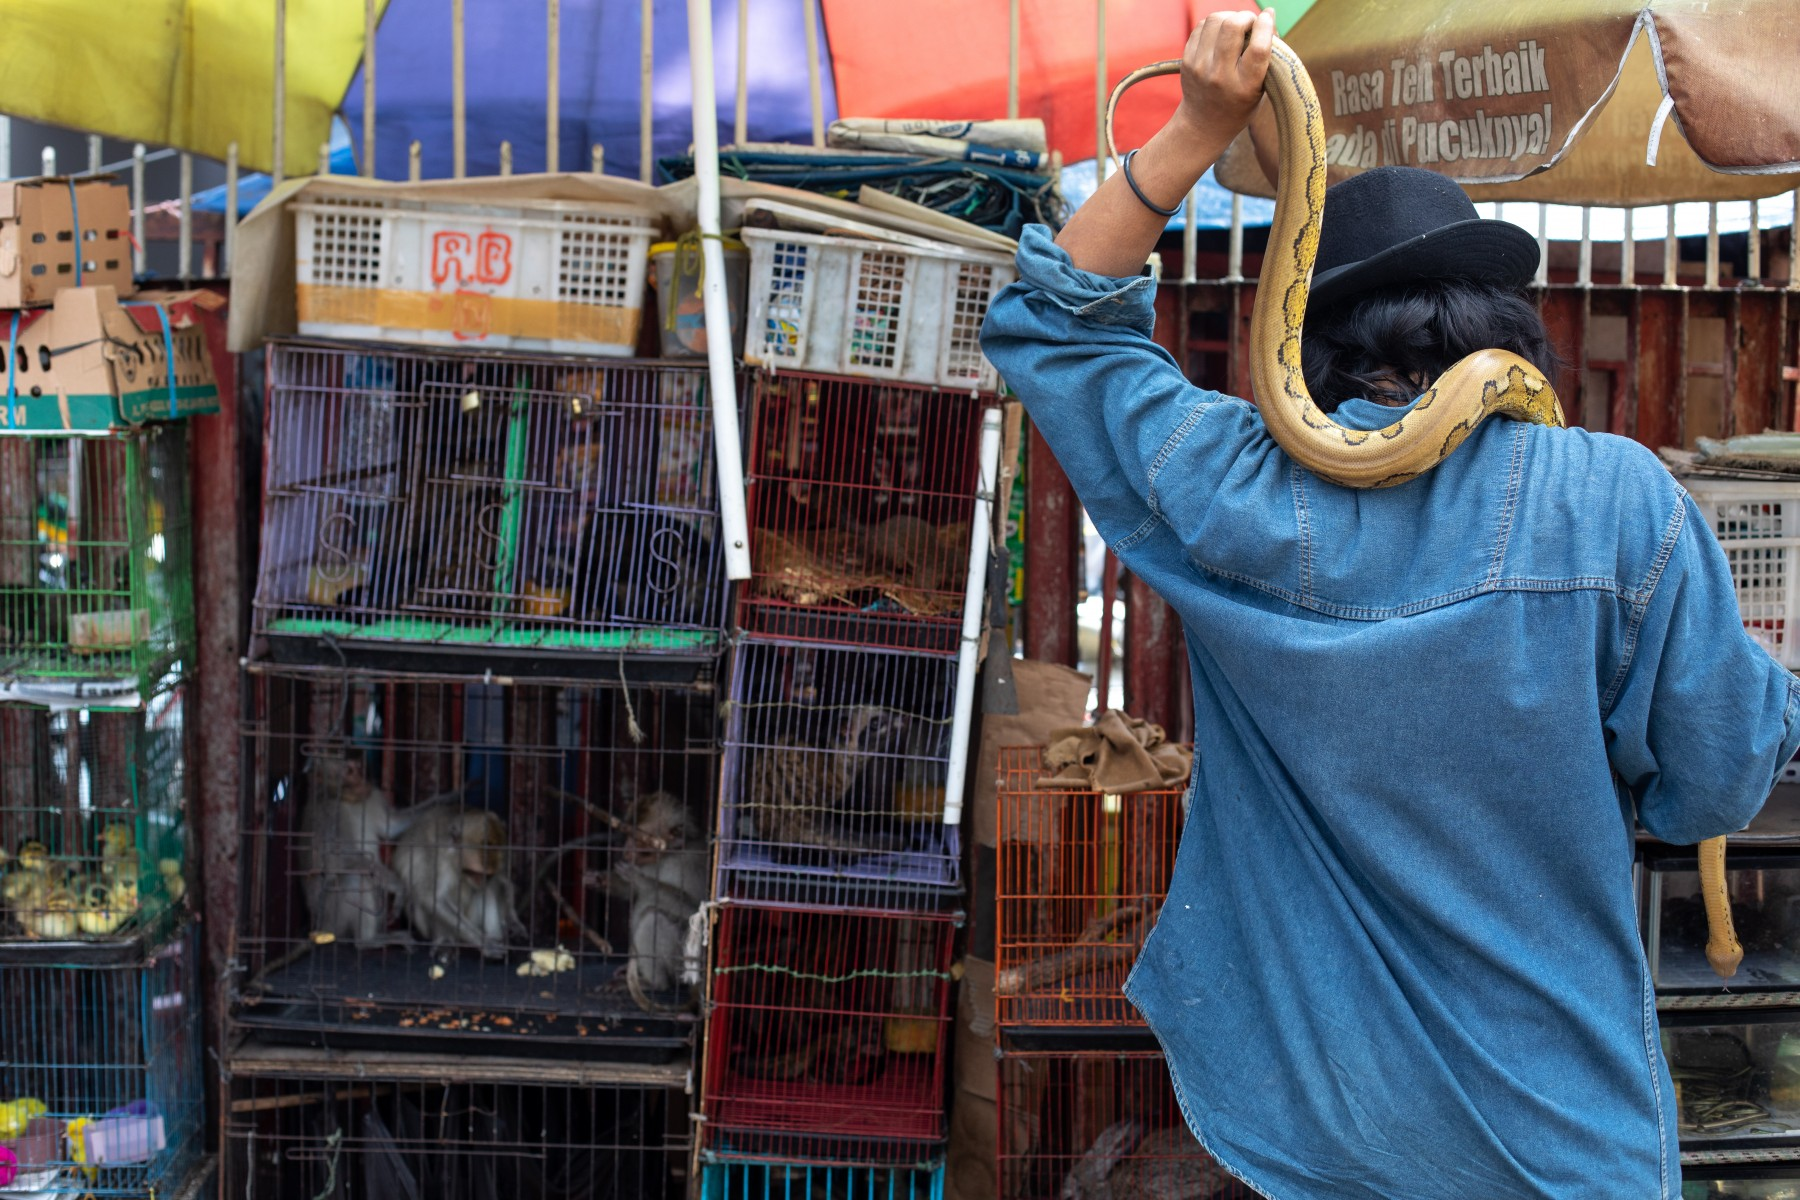 A snake on a vendors shoulder, and cages of animals at a market in Jakarta, Indonesia. Credit Line: World Animal Protection / Aaron Gekoski